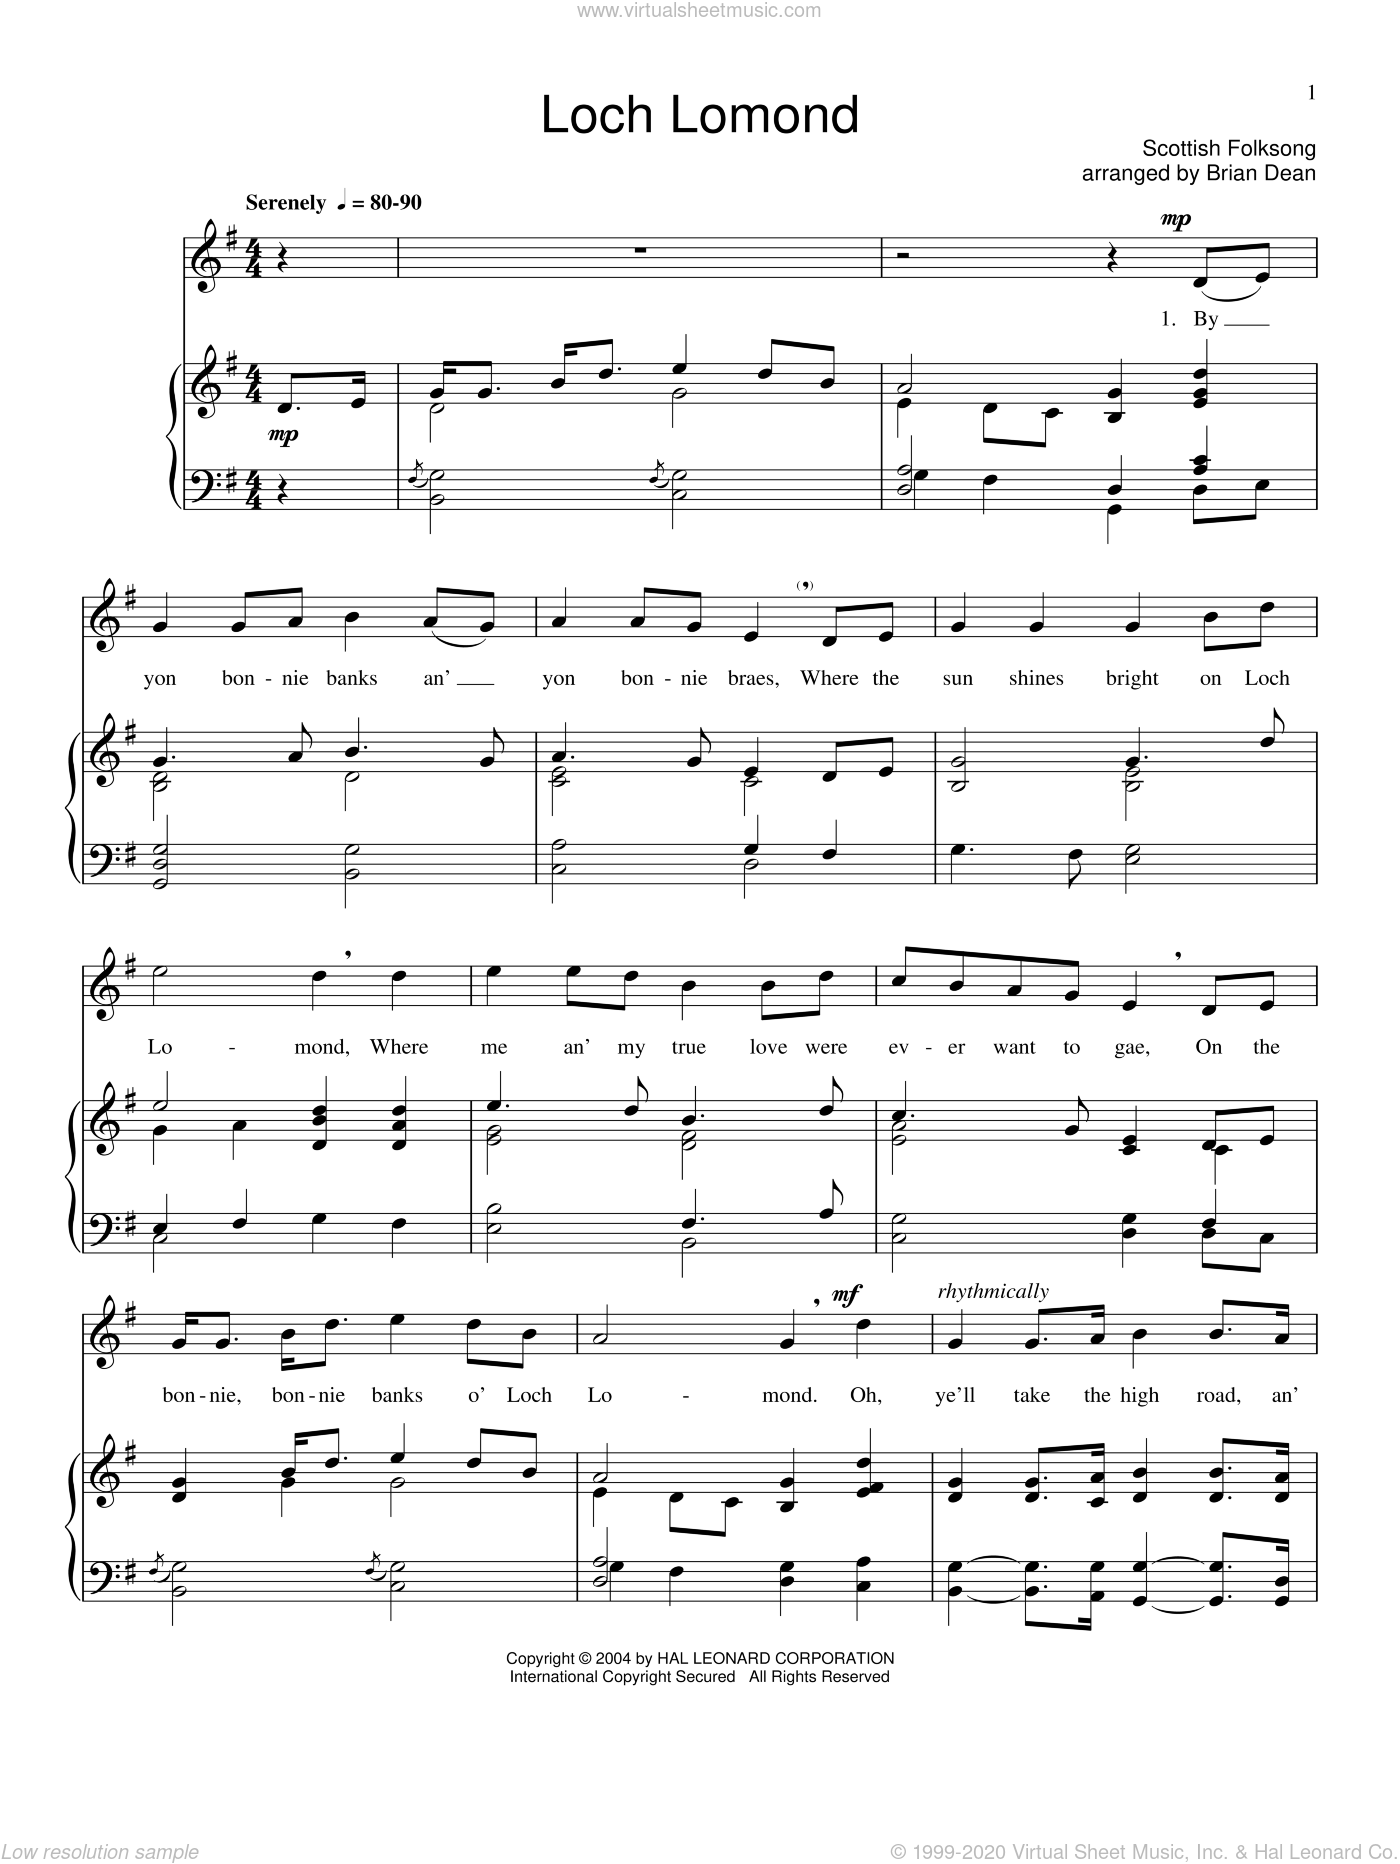 Loch Lomond sheet music for voice and piano. Score Image Preview.